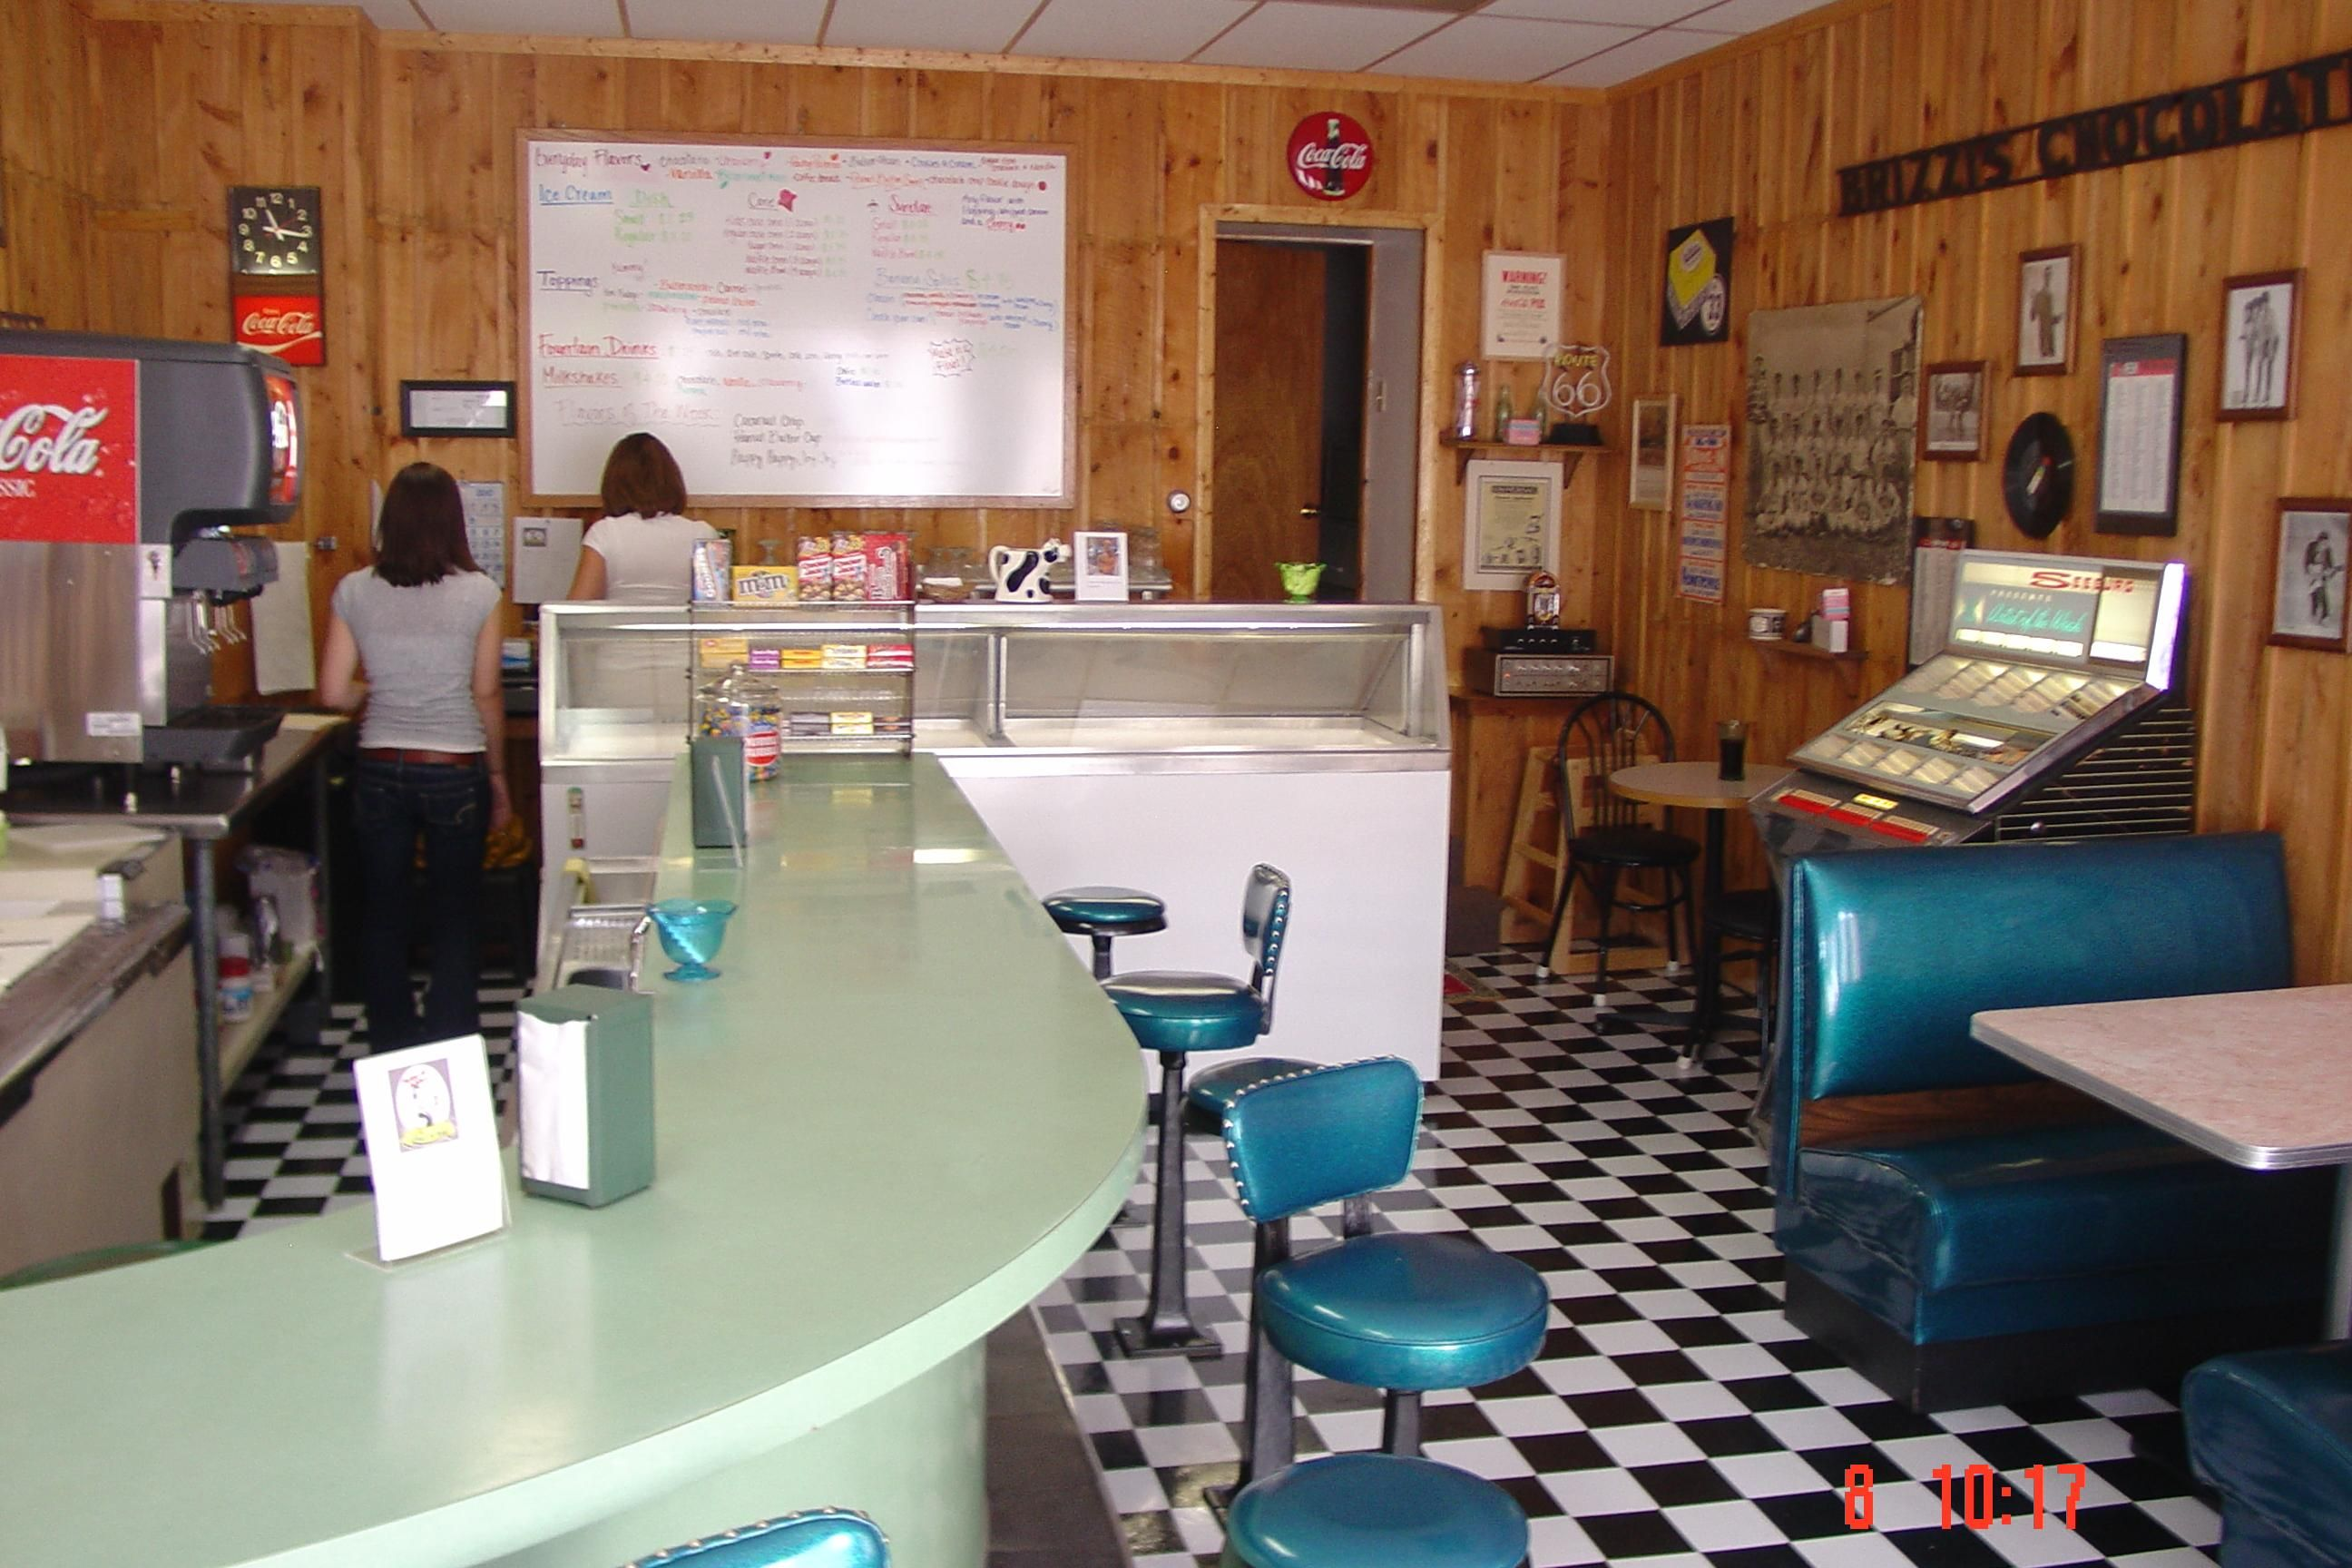 images of old fashioned ice cream parlor - Yahoo! Search Results